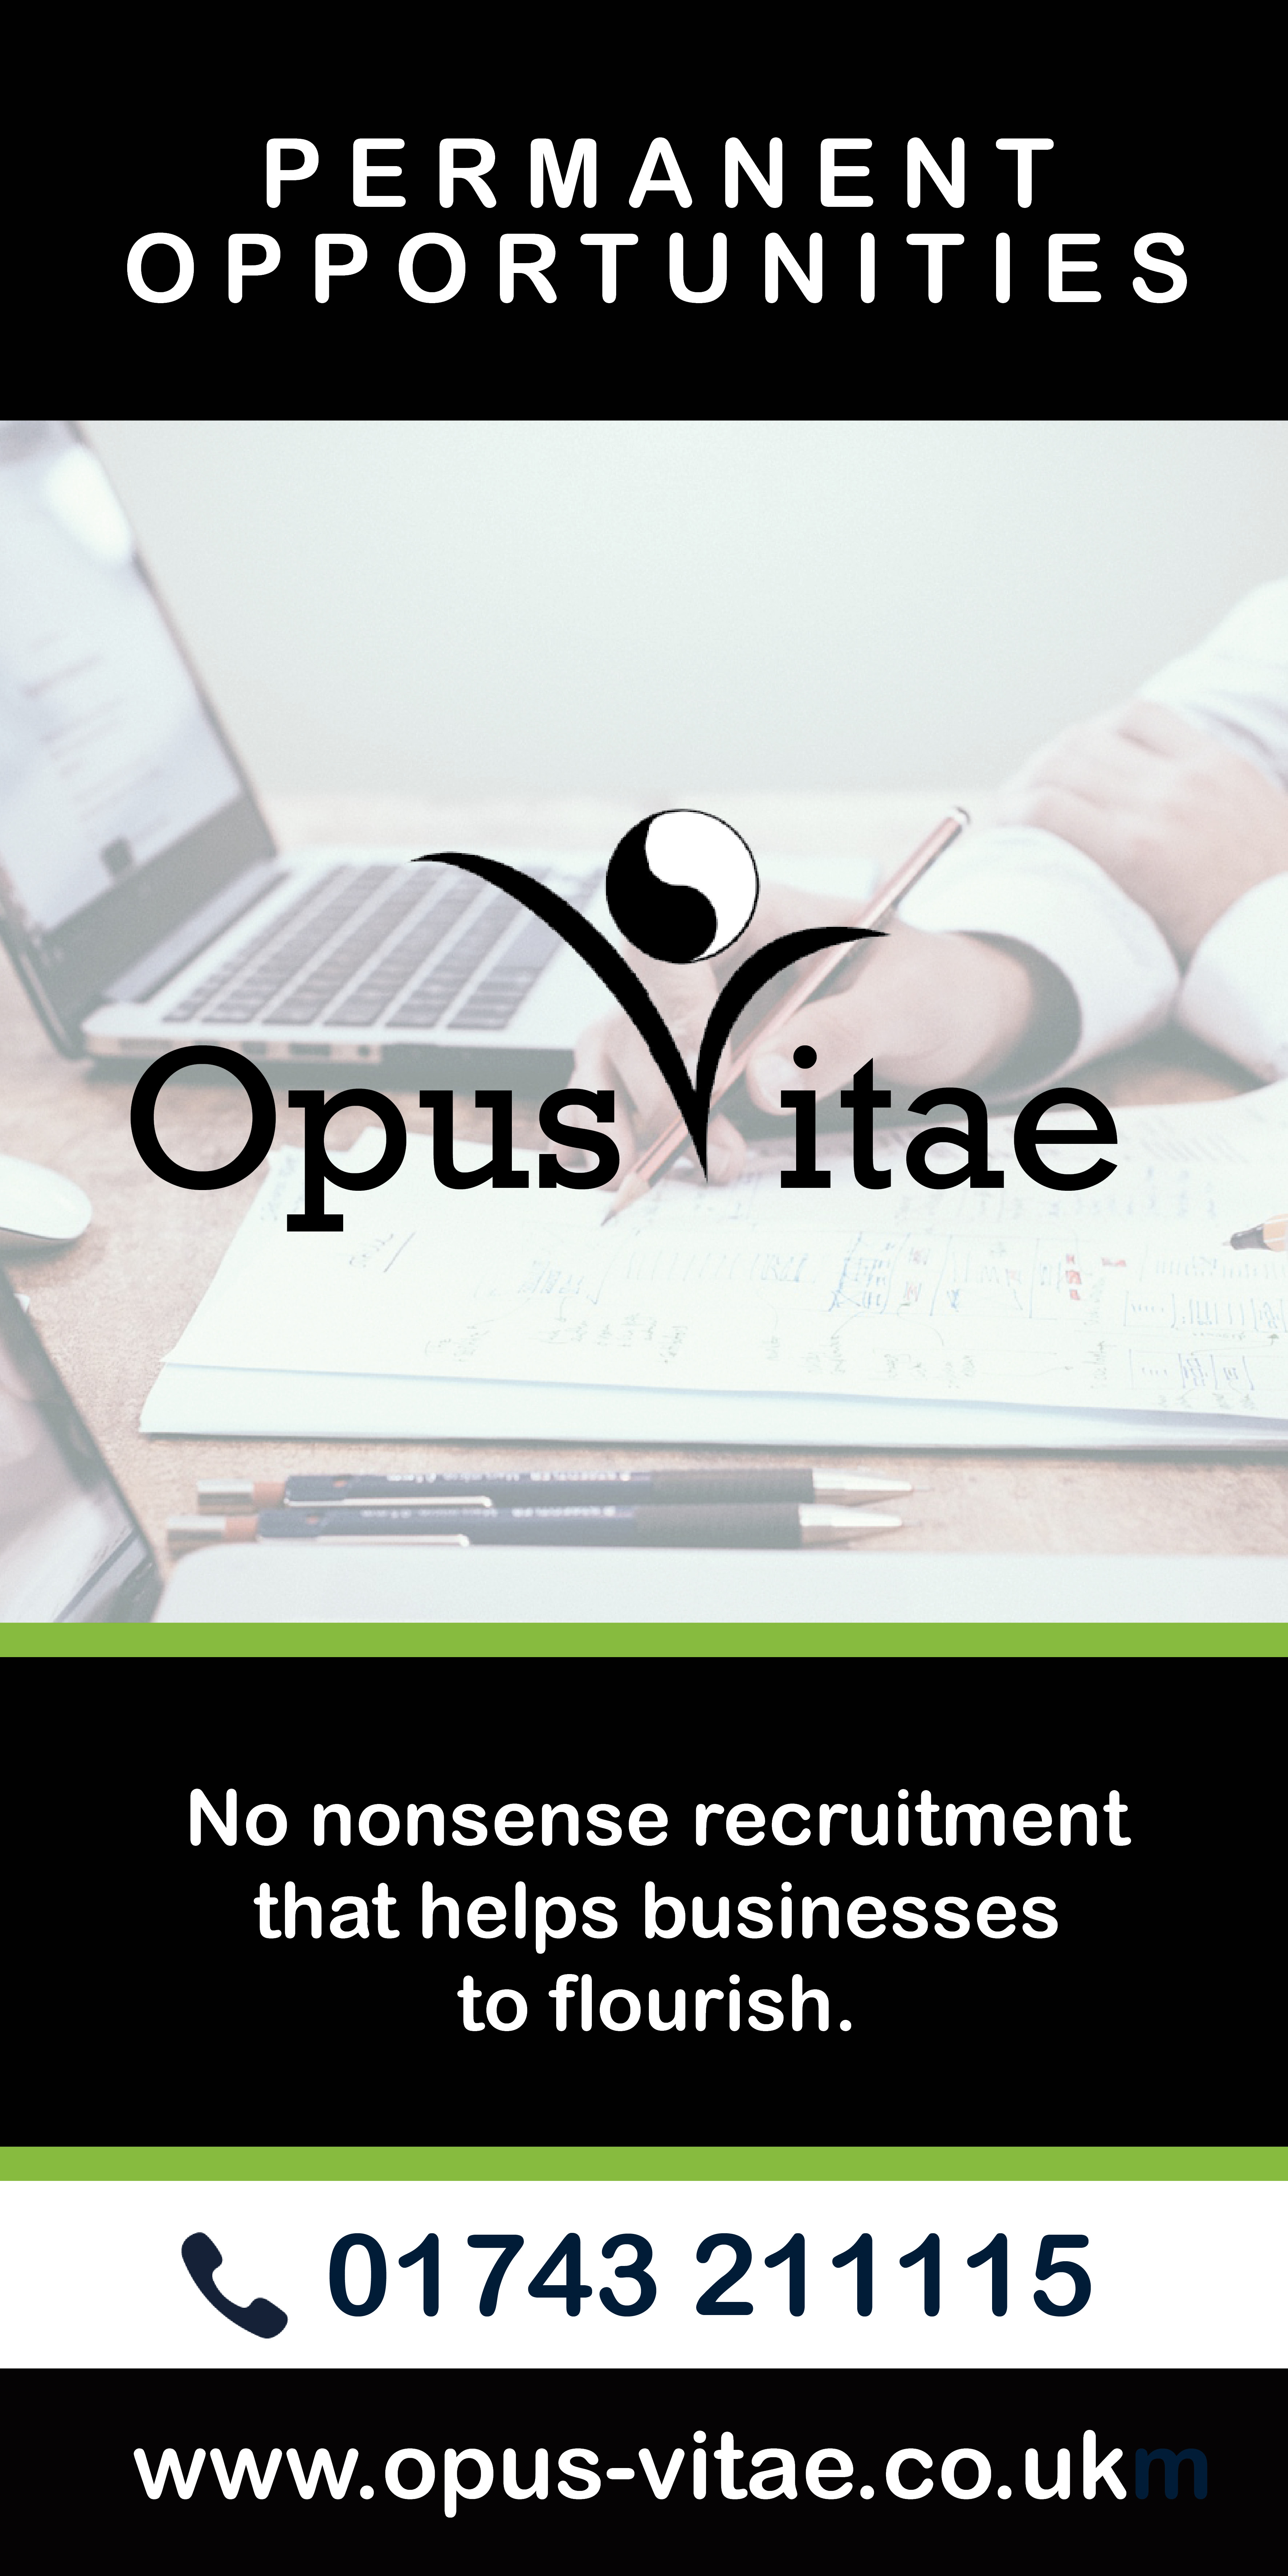 https://www.opus-vitae.co.uk